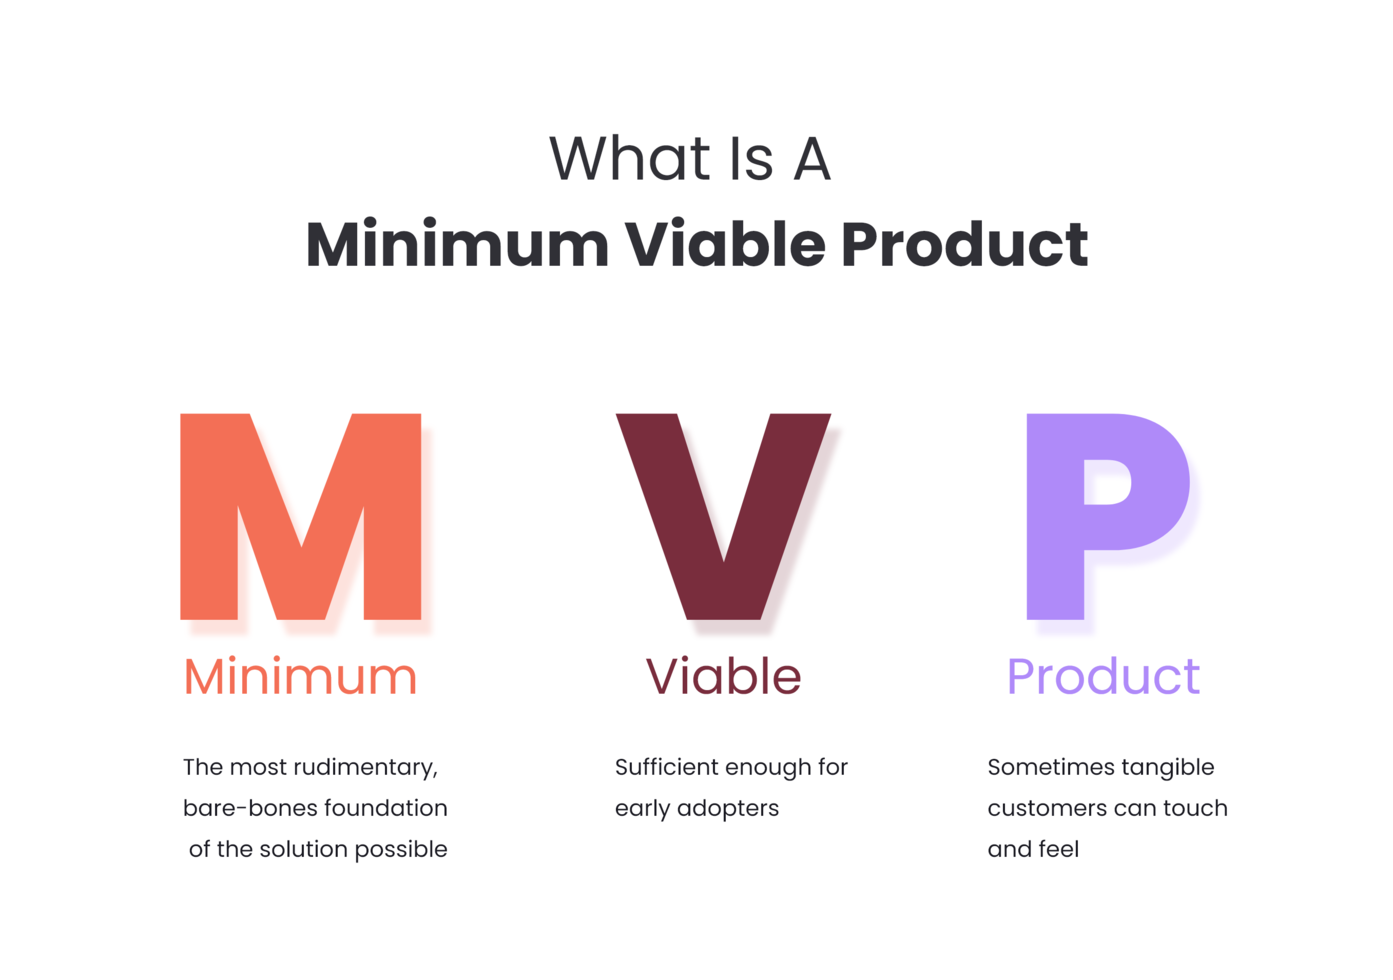 Minimum Viable Product - What Is it